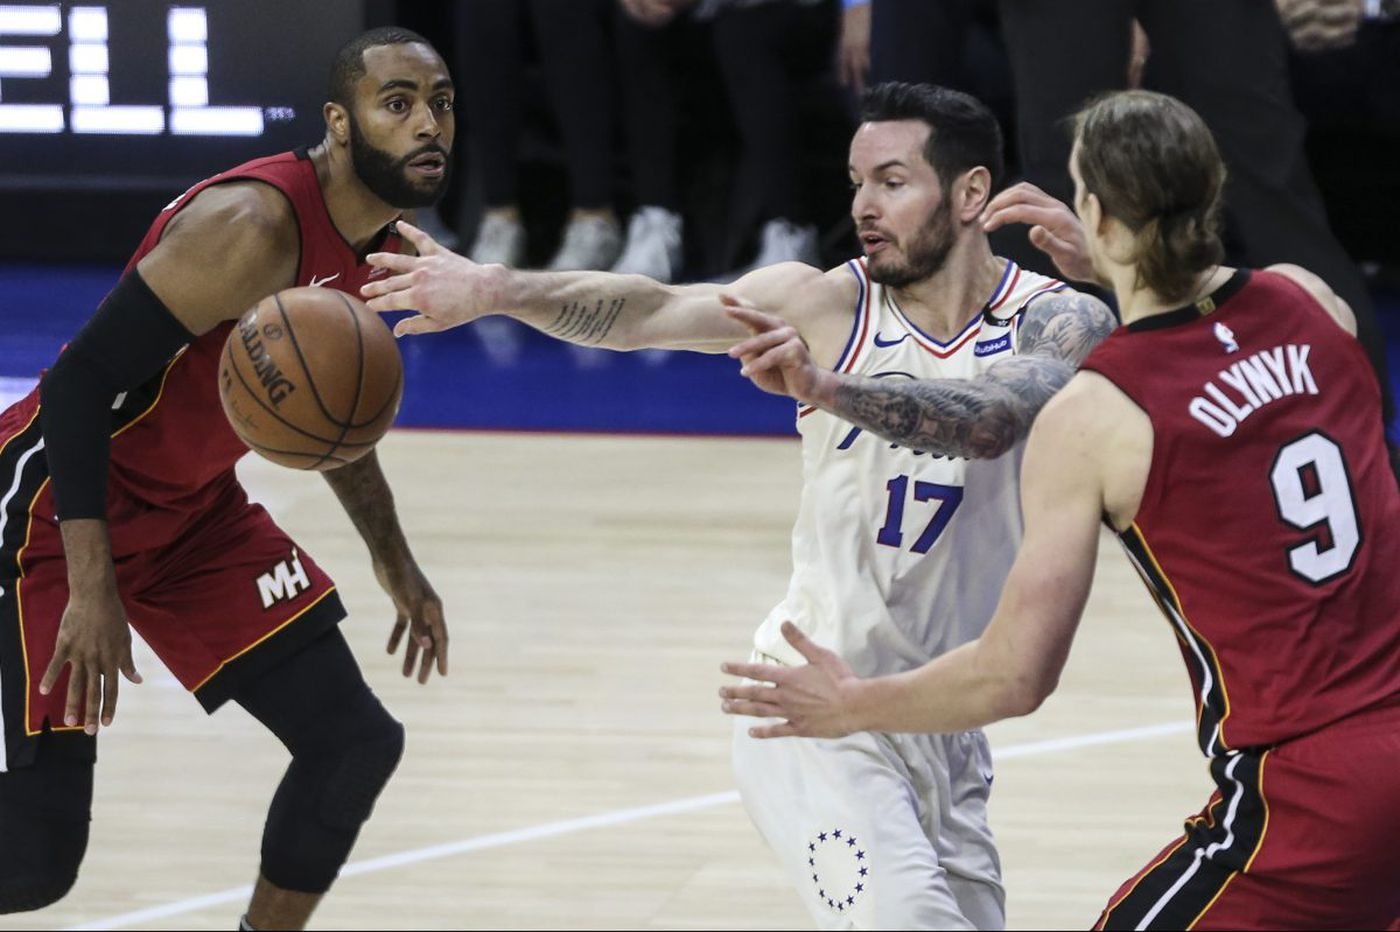 Sixers struggled with Miami's physicality in Game 2 loss